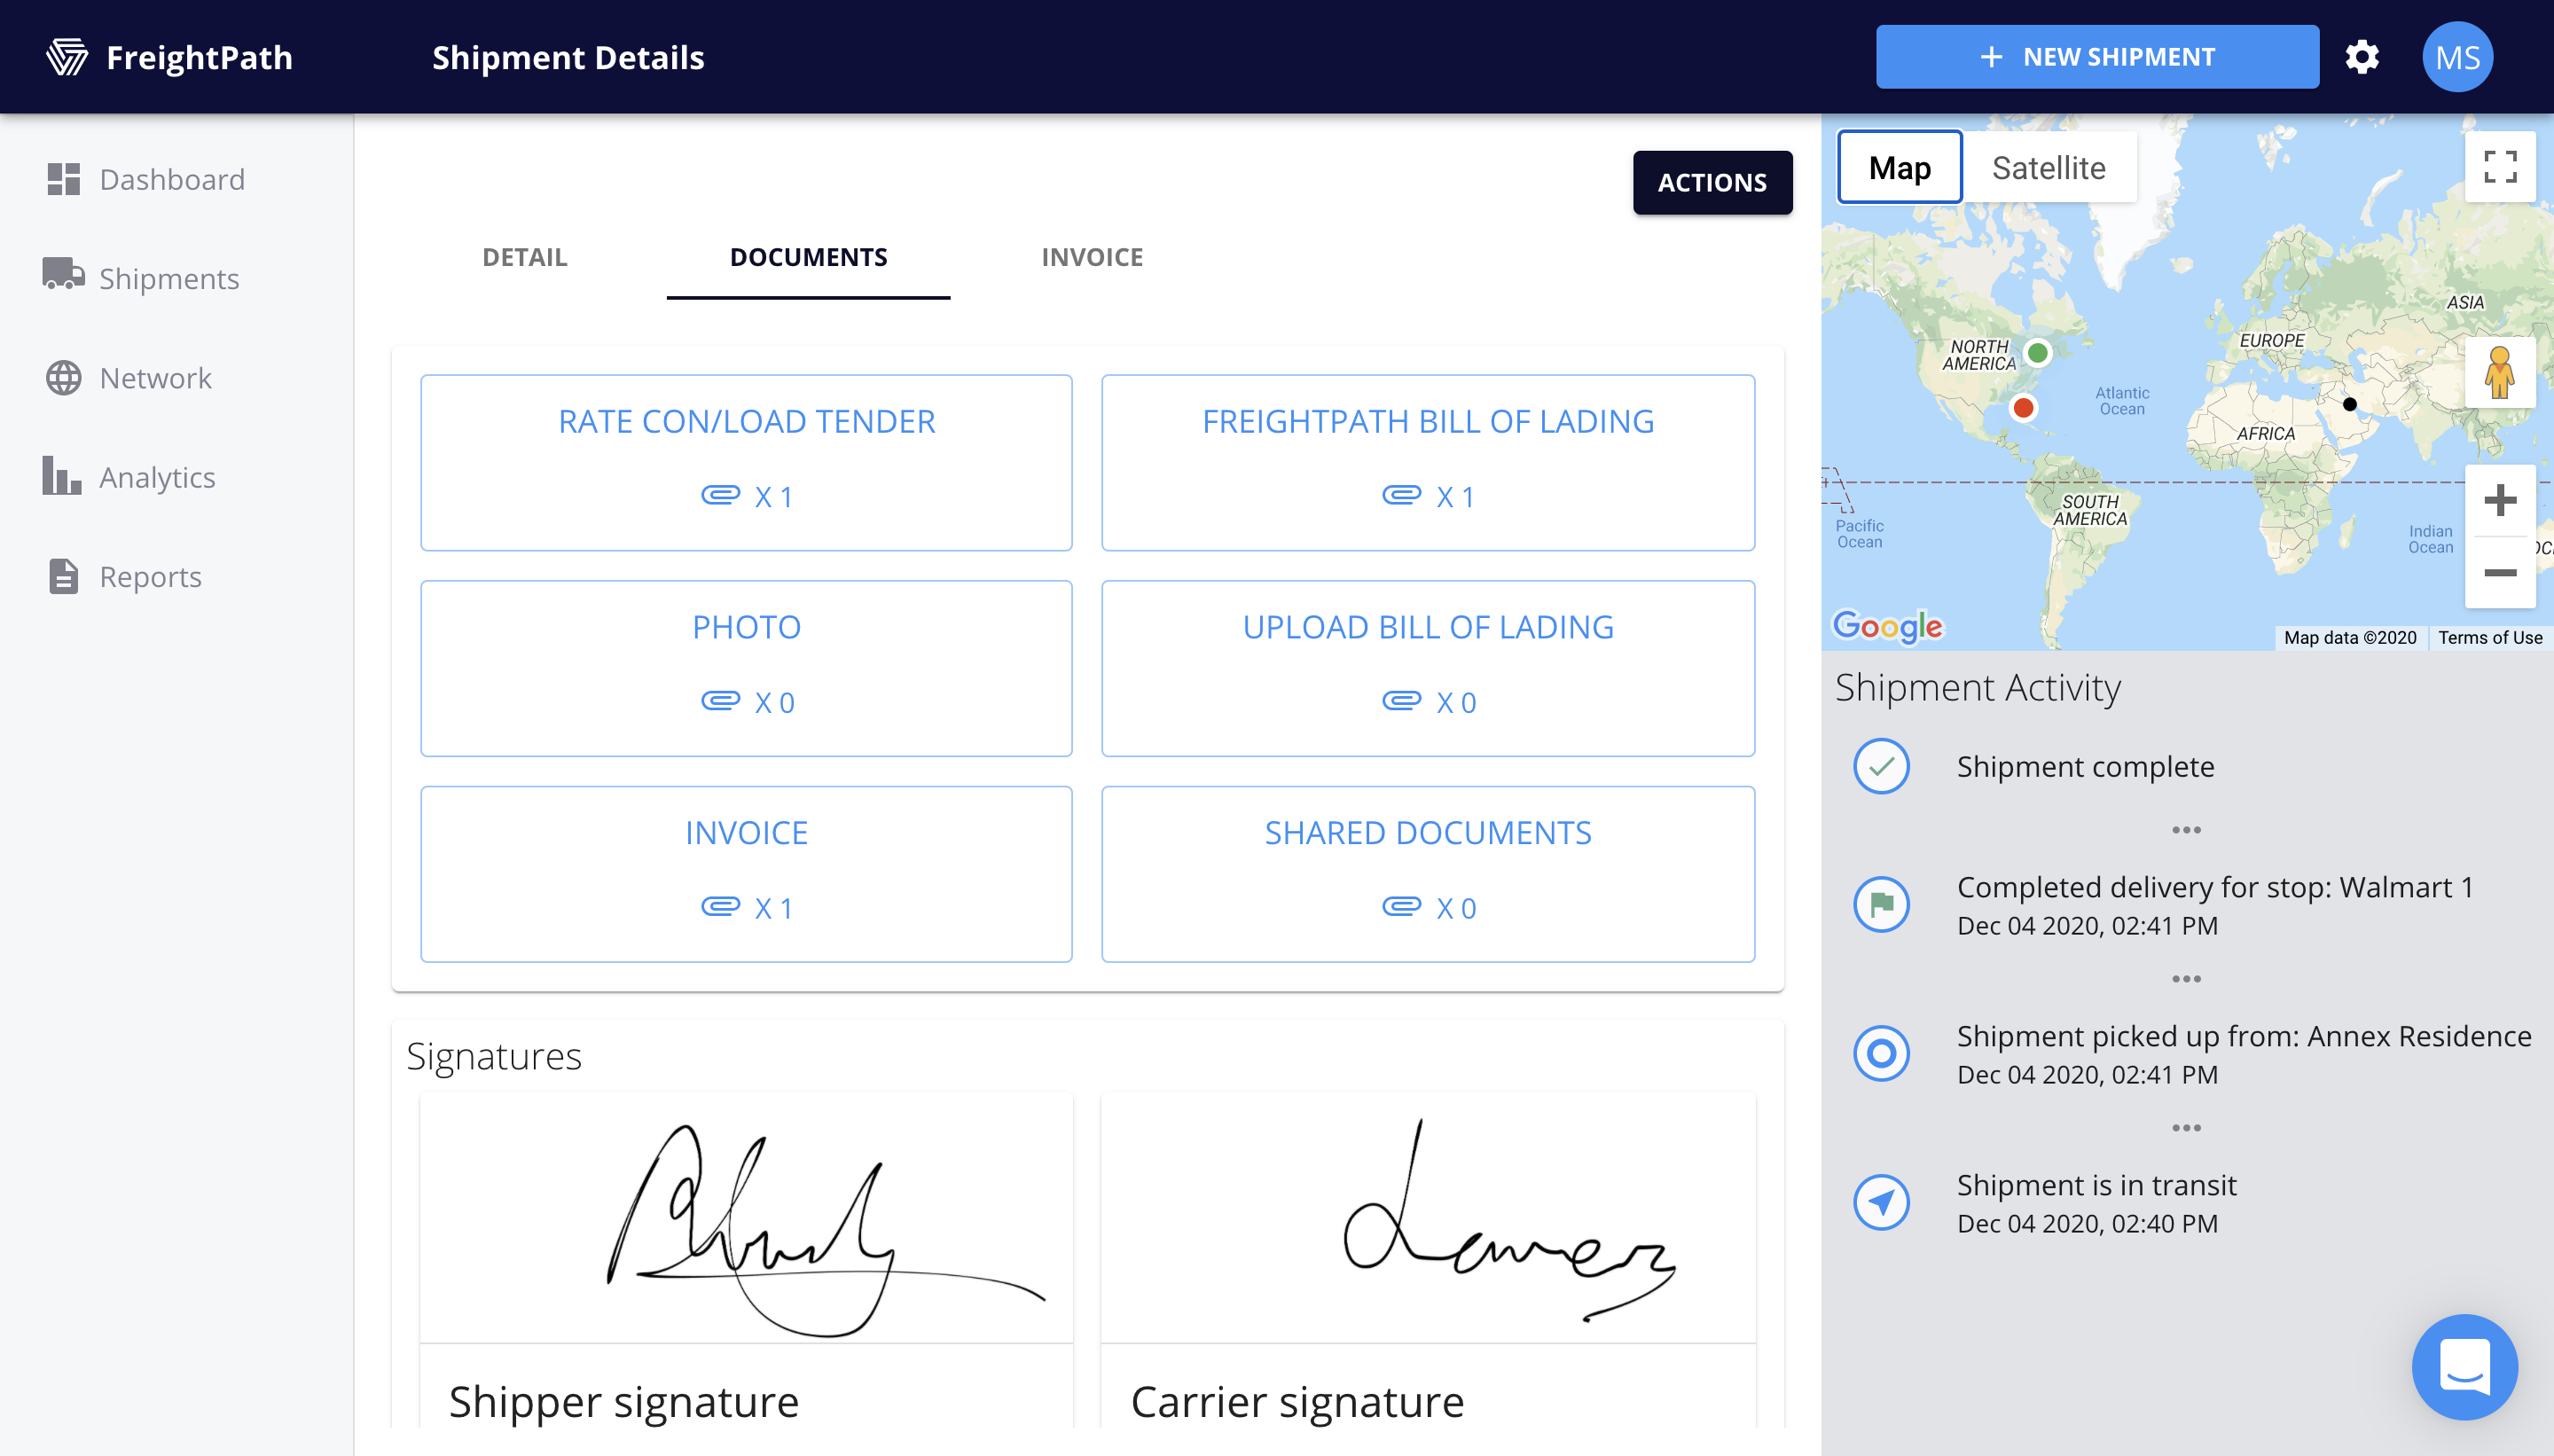 FreightPath Web Portal Shipping Details Page